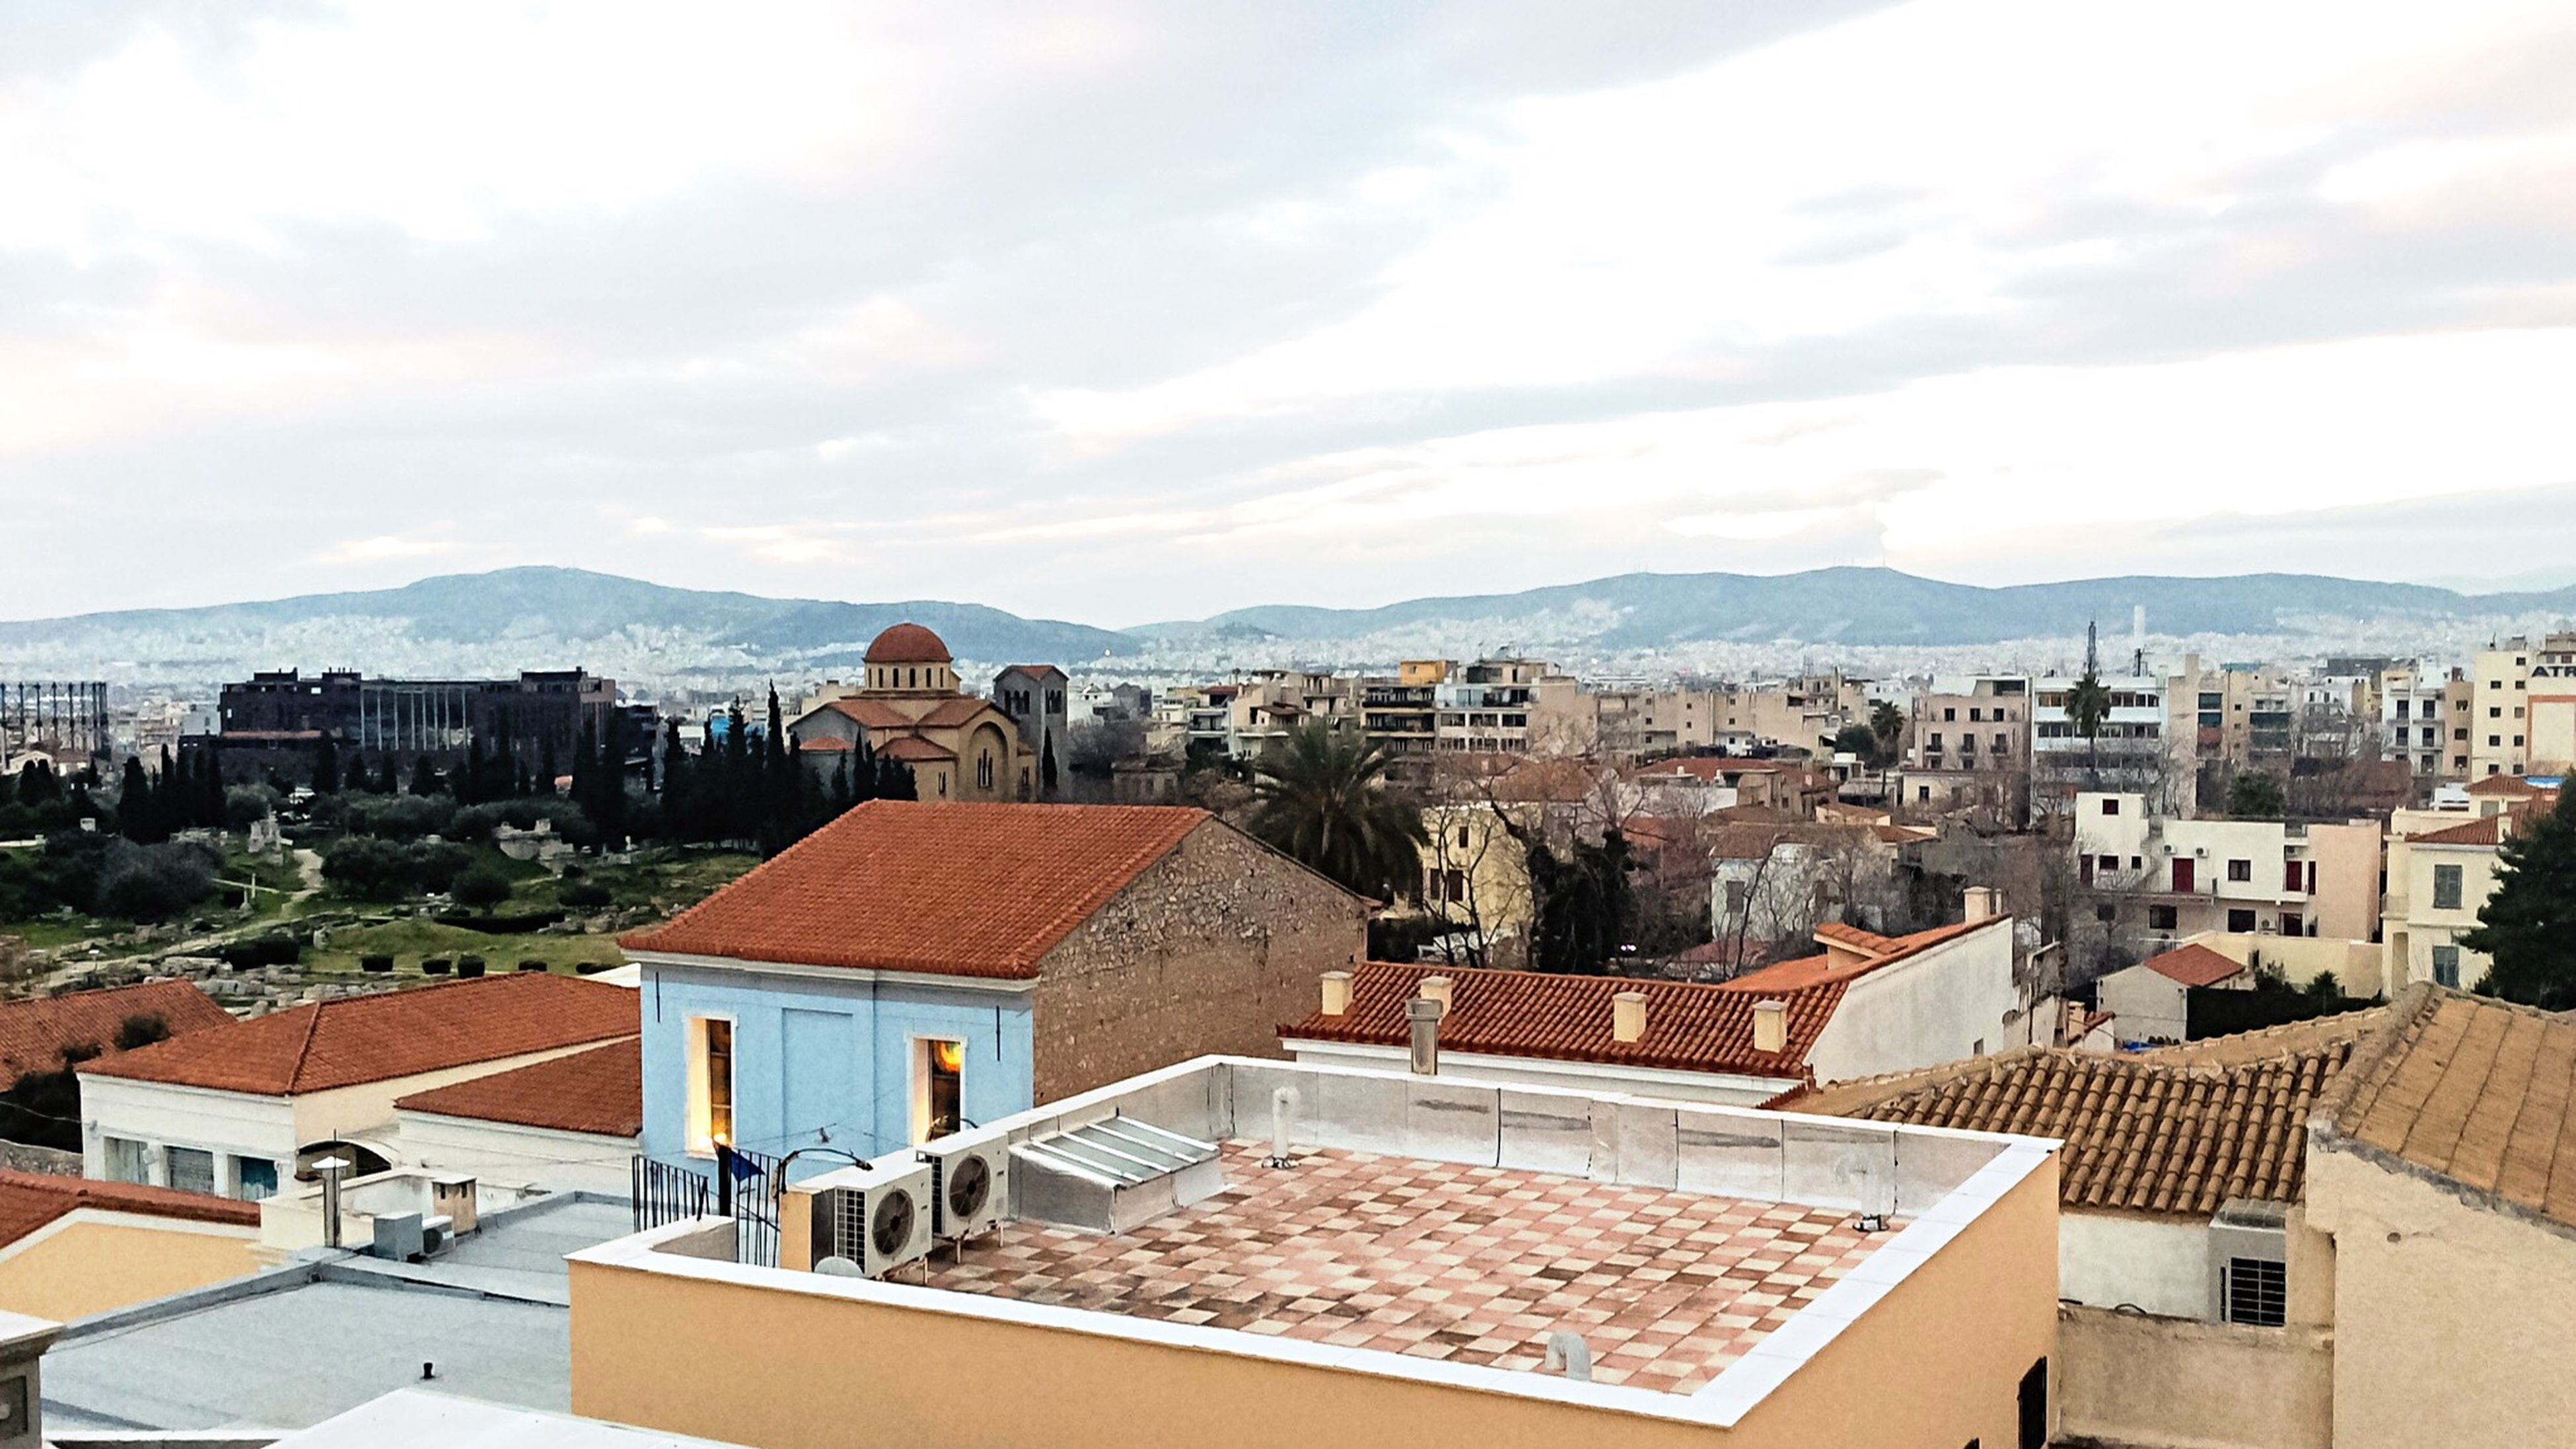 Another one from the Roof of my office Building . Rooftops of the Neighborhood , part of Kerameikos Cemetery , a Church totally out of scale, the western suburbs of the City , the Athenian Sky on a winter's eve... My habitat during weekdays... My Life In Ruins Urban Palimpsest History Through The Lens  Historical Monuments Historical Place Cityscapes Cityscape Urban Landscape View From Above No People Architecture Discover Your City From My Point Of View Athens Greece